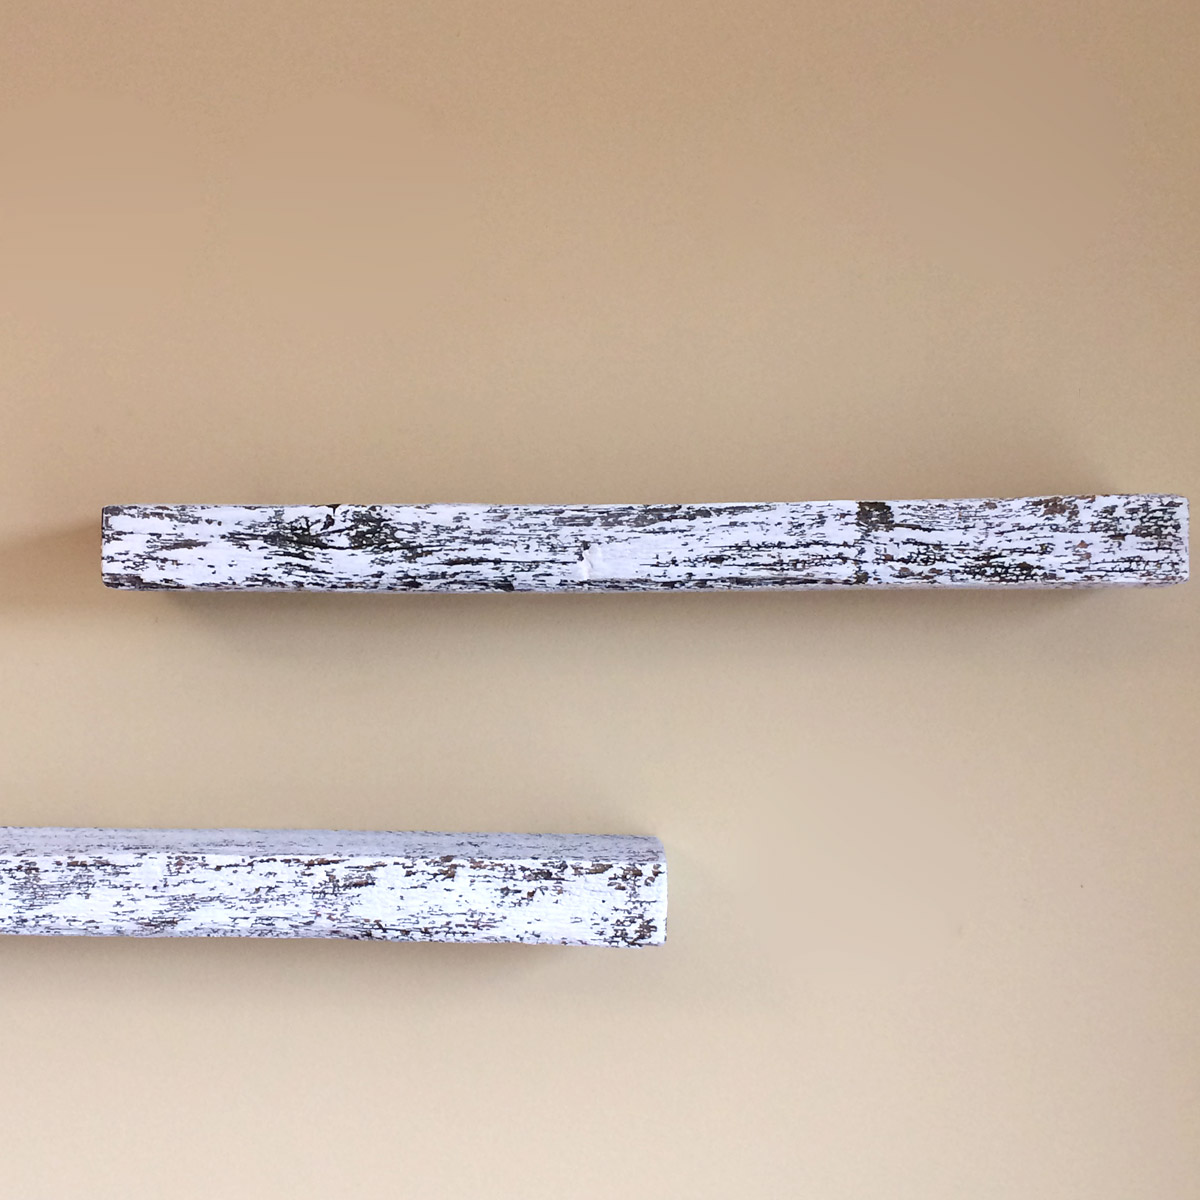 """Rustic White"" Floating Shelf, Reclaimed Weathered Oak Barn Wood, 24"" x 5"" deep"